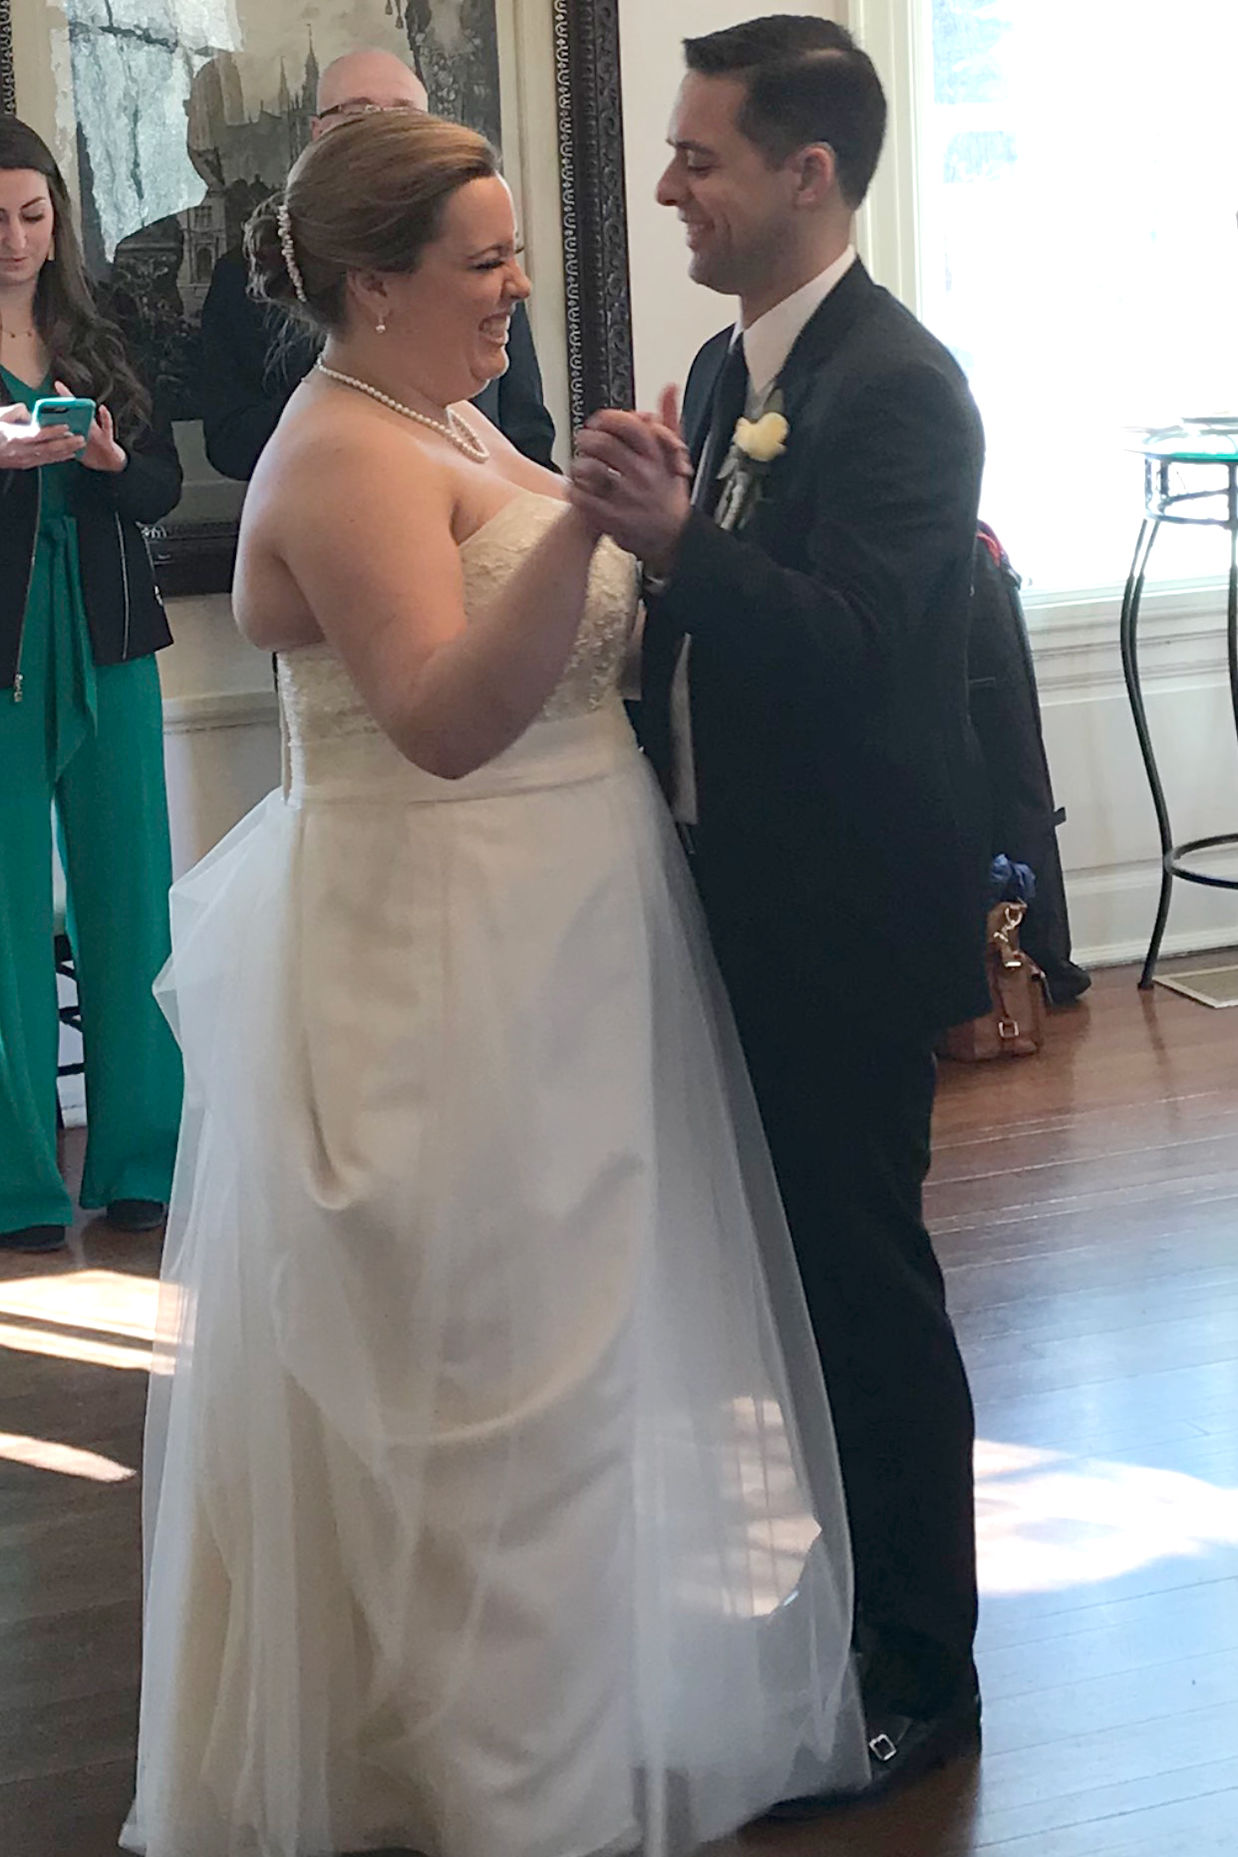 Deaf Groom Gets Life-Changing Cochlear Implant Just in Time for Wedding: I Heard 'the Clapping!'